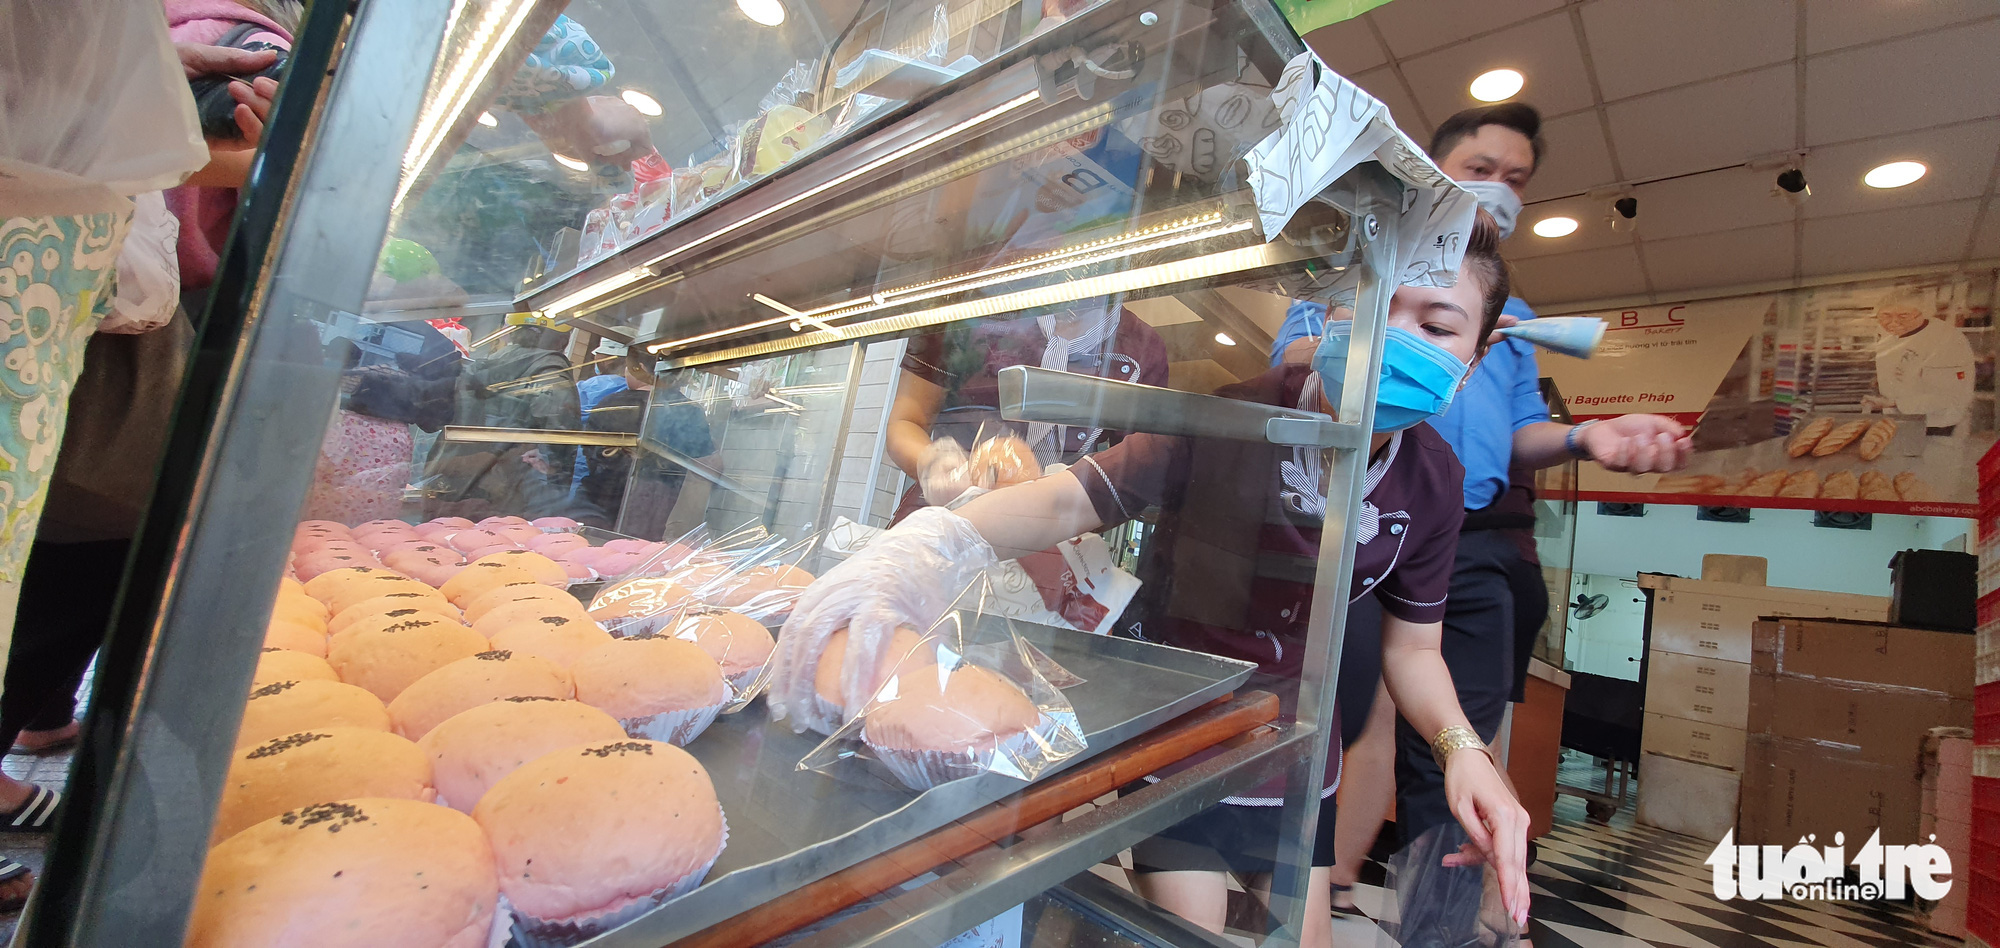 An employee is busy selling dragon fruit bread to customers at an ABC Bakery store on Nguyen Trai Street in District 5, Ho Chi Minh City, February 16, 2020. Photo: Cong Trung / Tuoi Tre